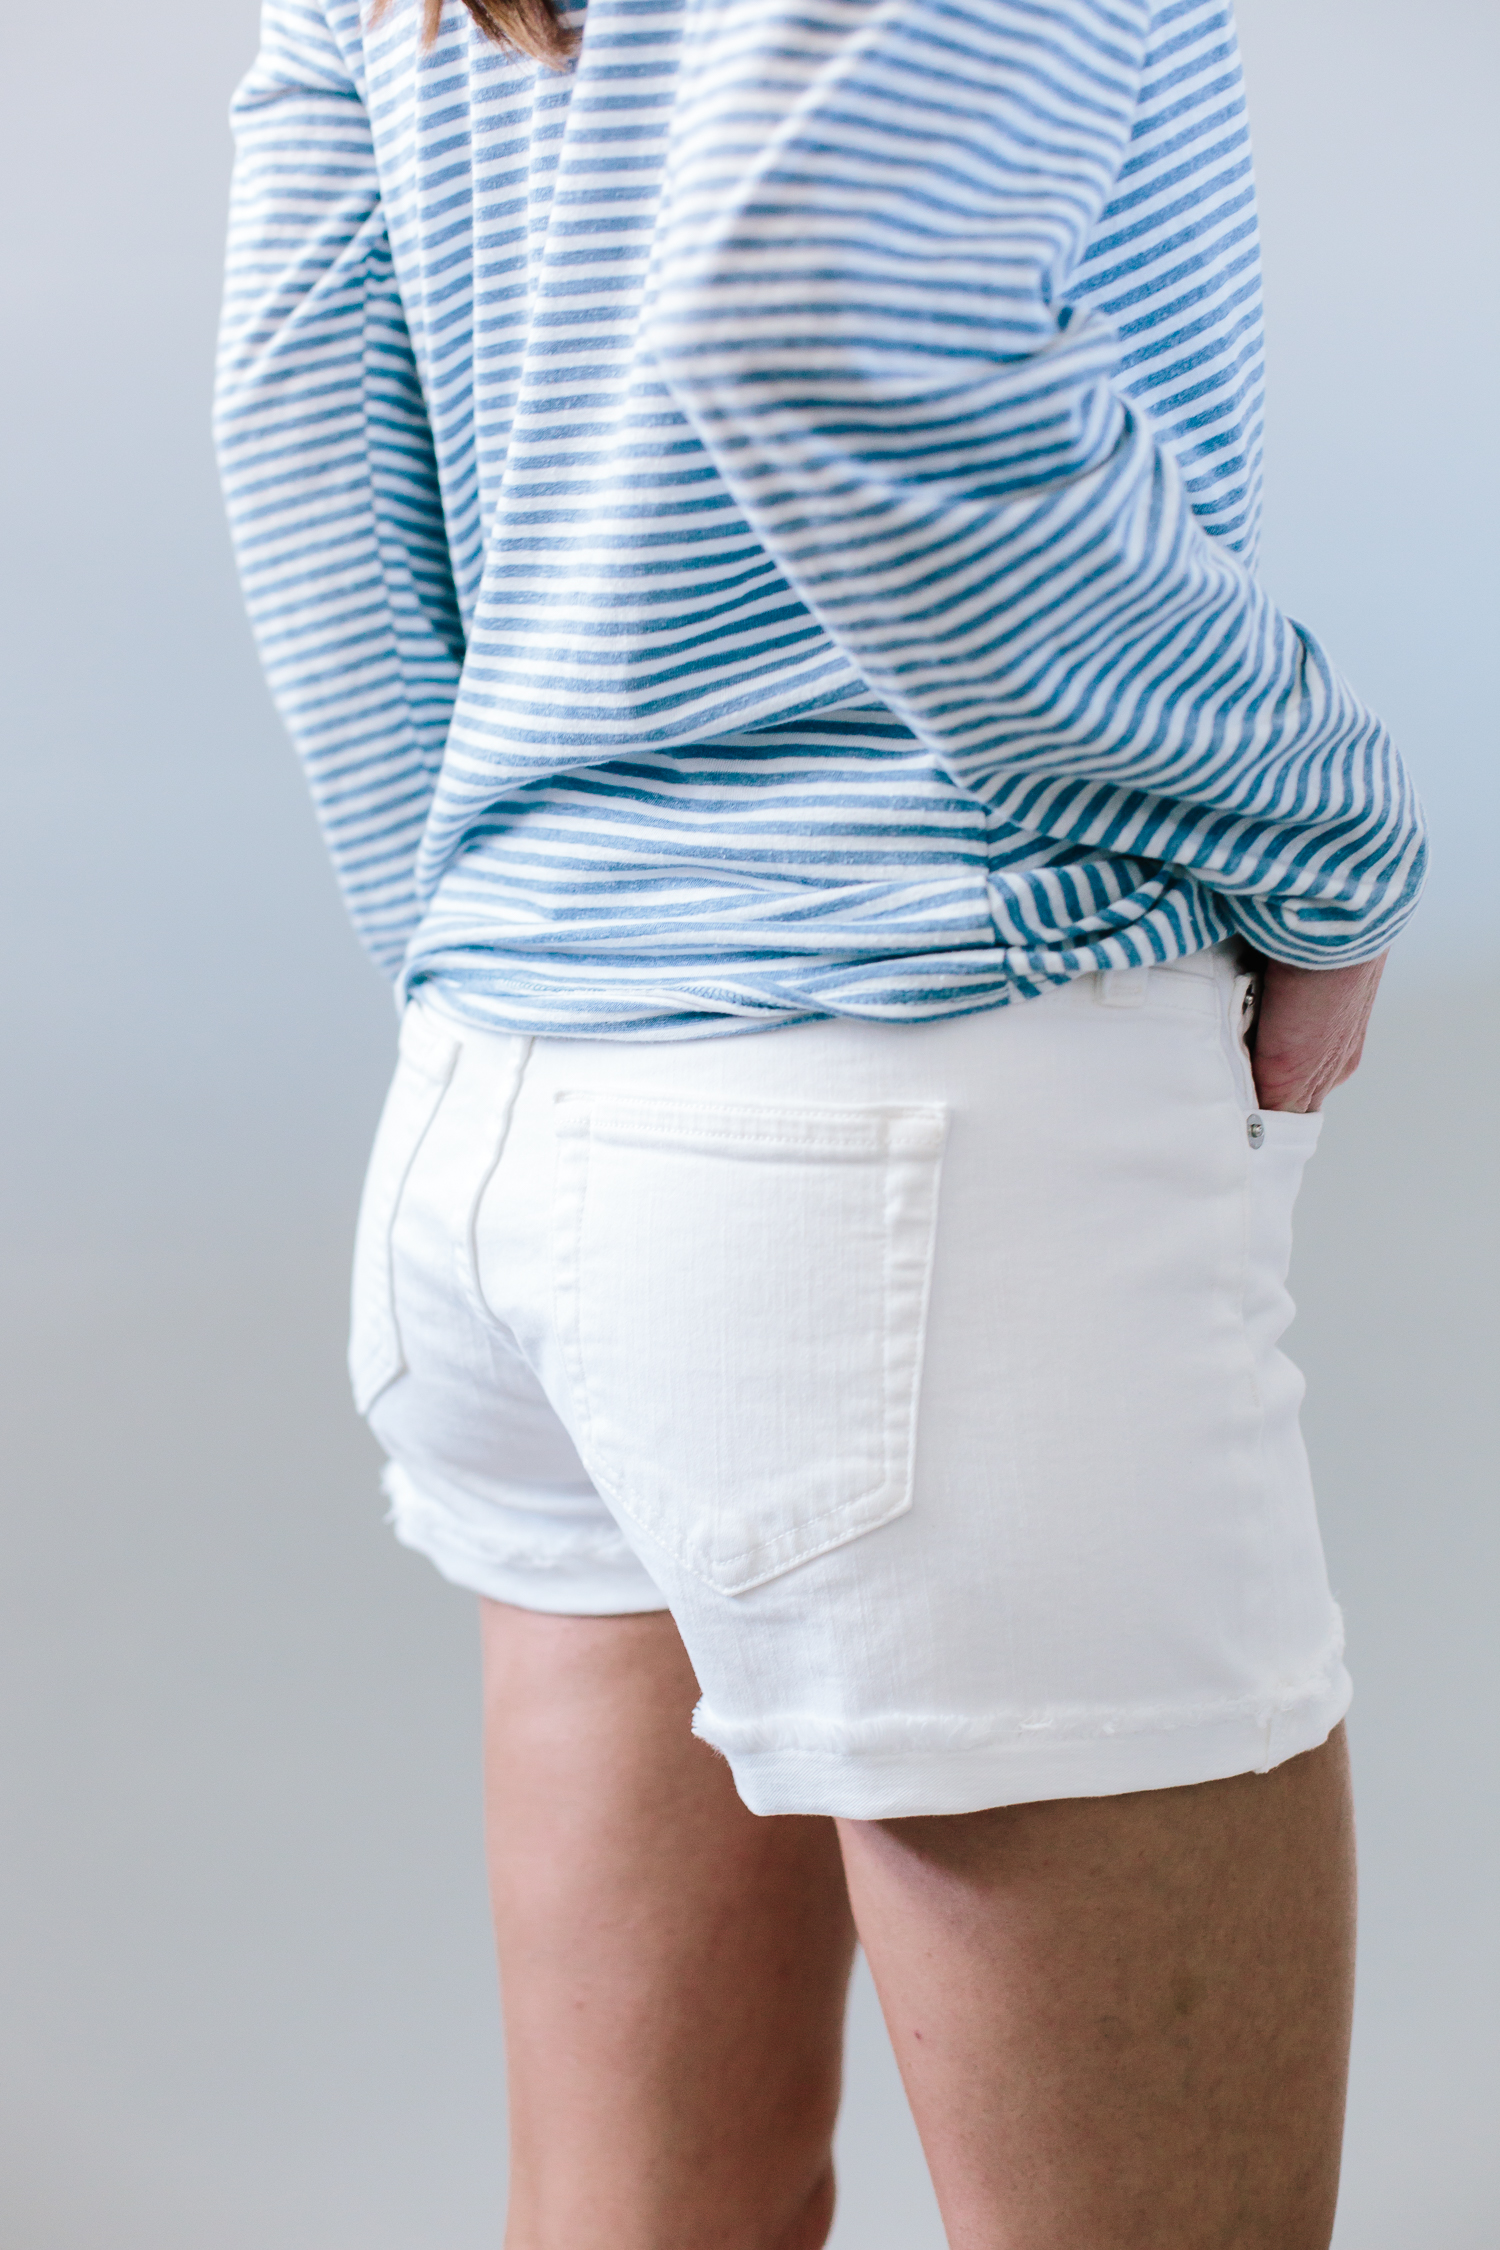 j.crew shorts, shorts review, summer shorts review, spring shorts review, white denim